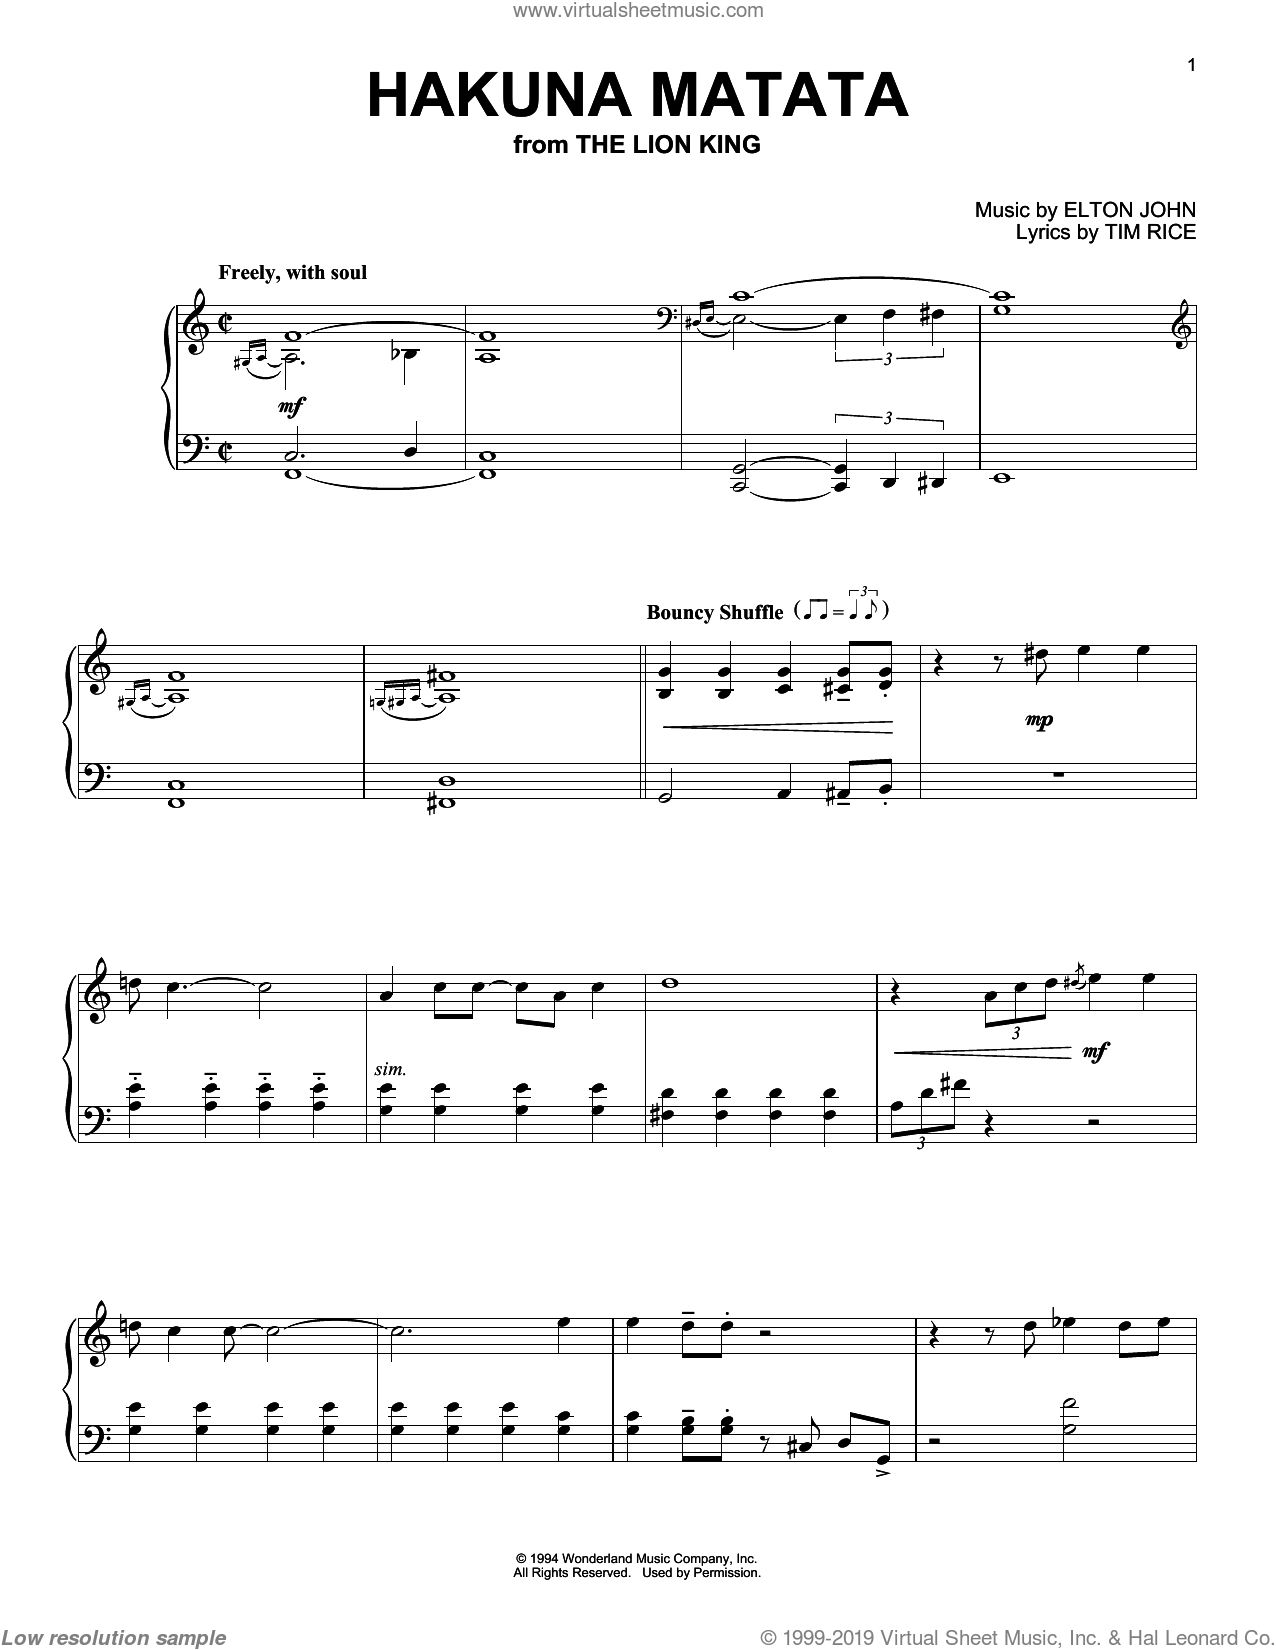 Hakuna Matata (from The Lion King) sheet music for piano solo by Elton John, The Lion King and Tim Rice, intermediate skill level